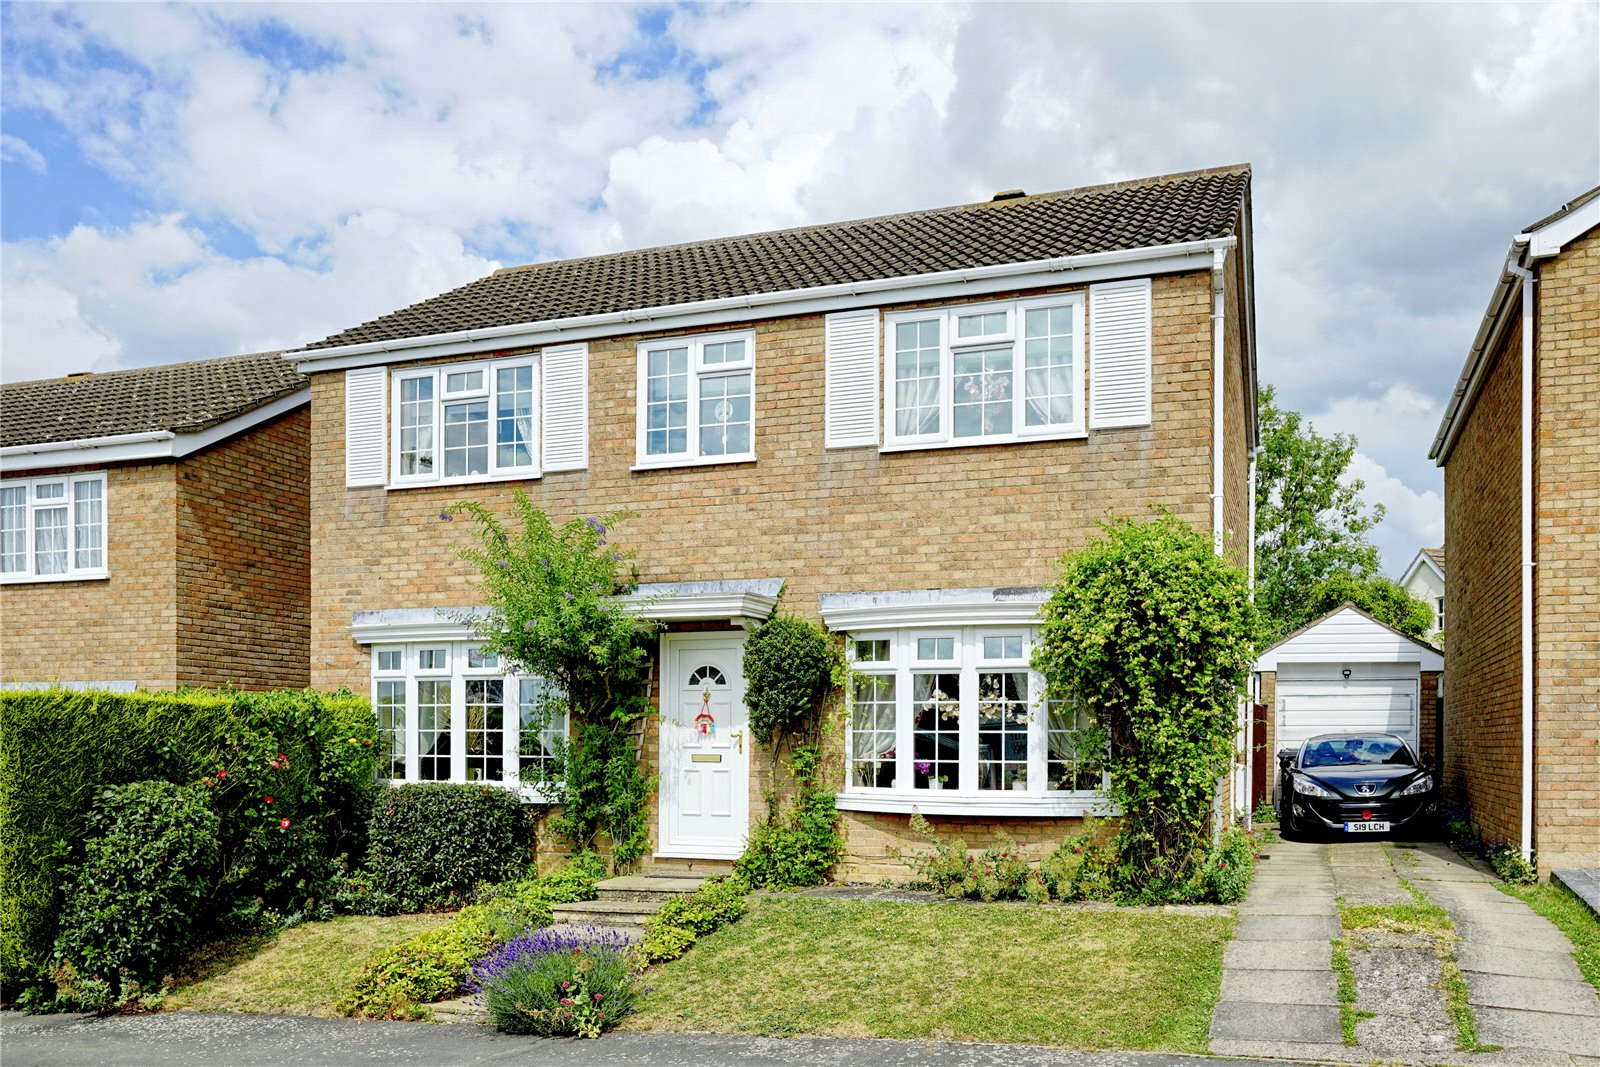 4 bed house for sale in Meadow Way, Great Paxton - Property Image 1